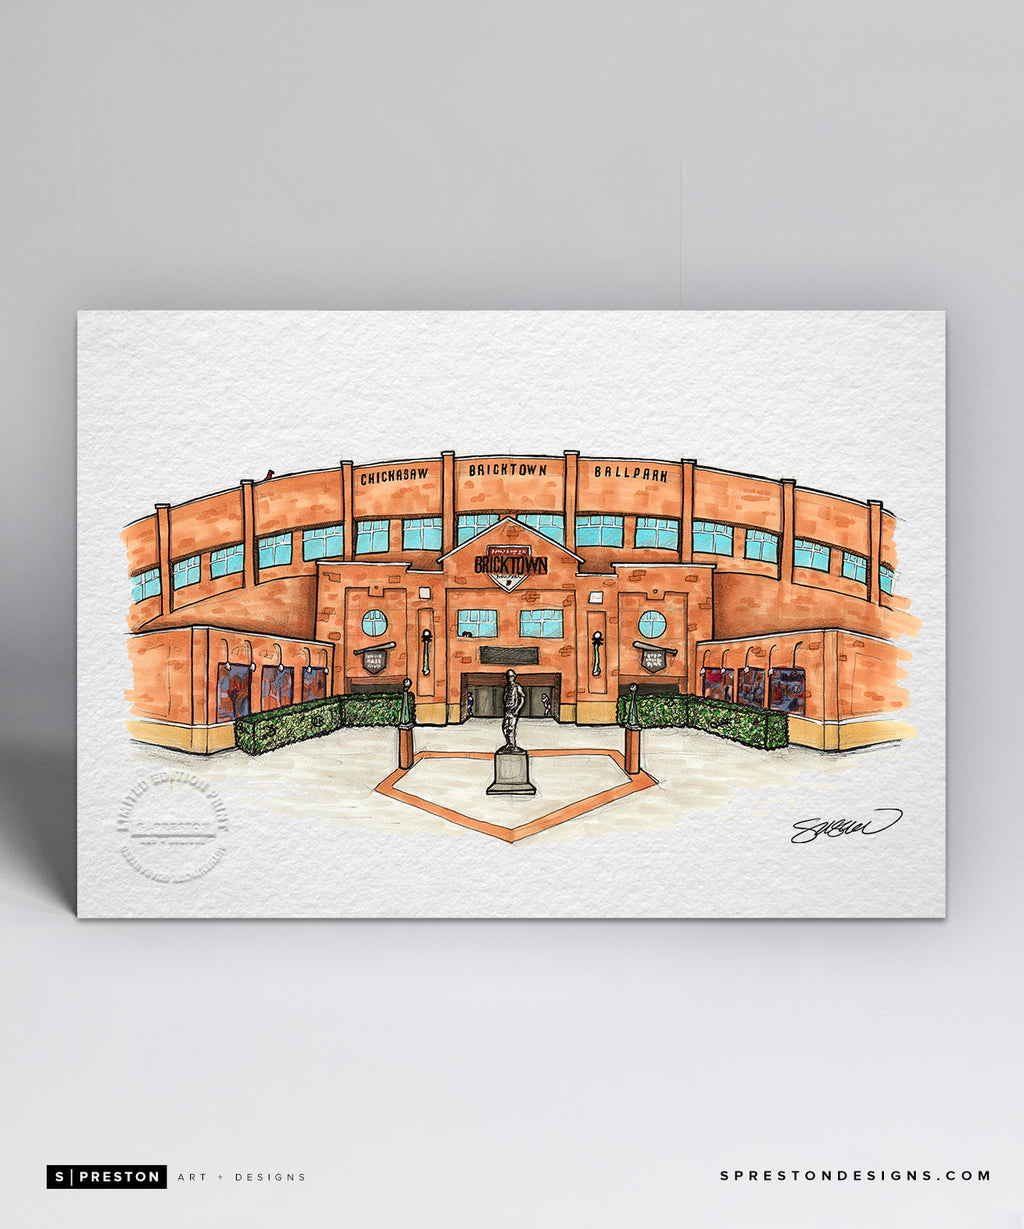 Chickasaw Bricktown Ballpark Sketch Illustration - Oklahoma City Limited Edition - Florida State University - S. Preston Art + Designs